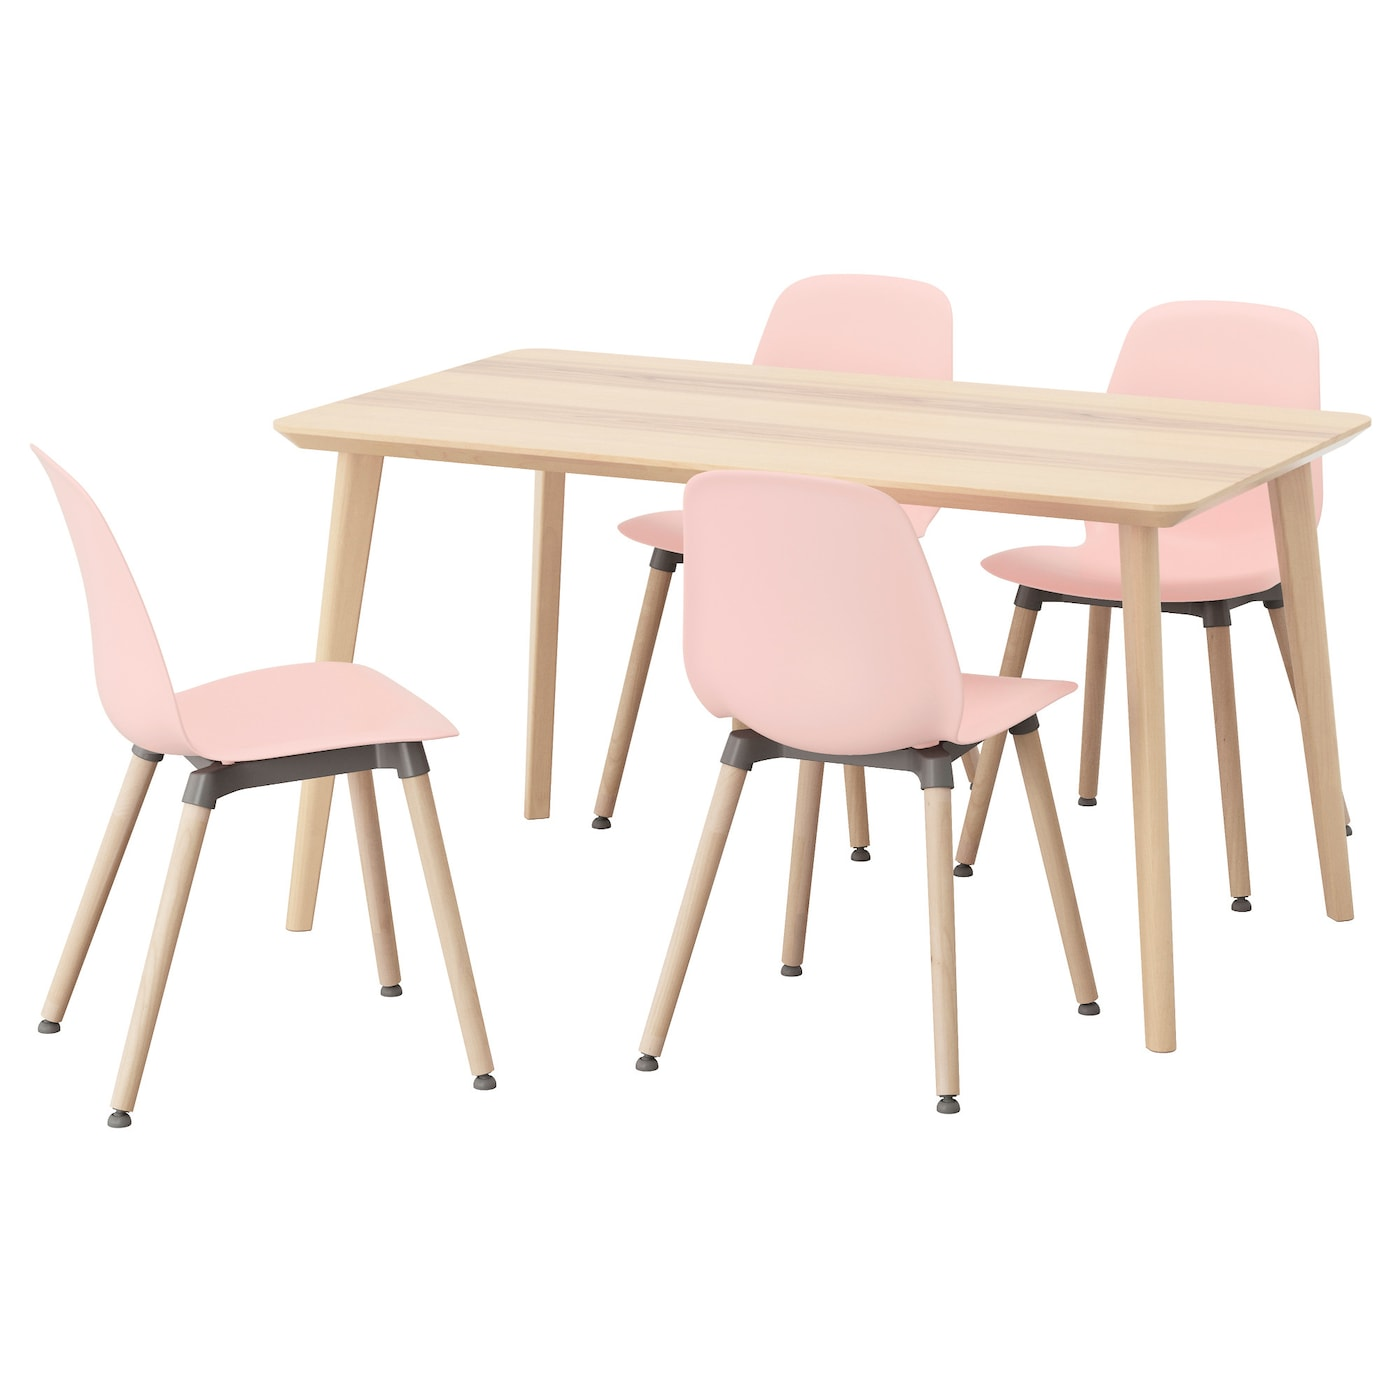 Dining table sets dining room sets ikea - Table et chaise ikea ...